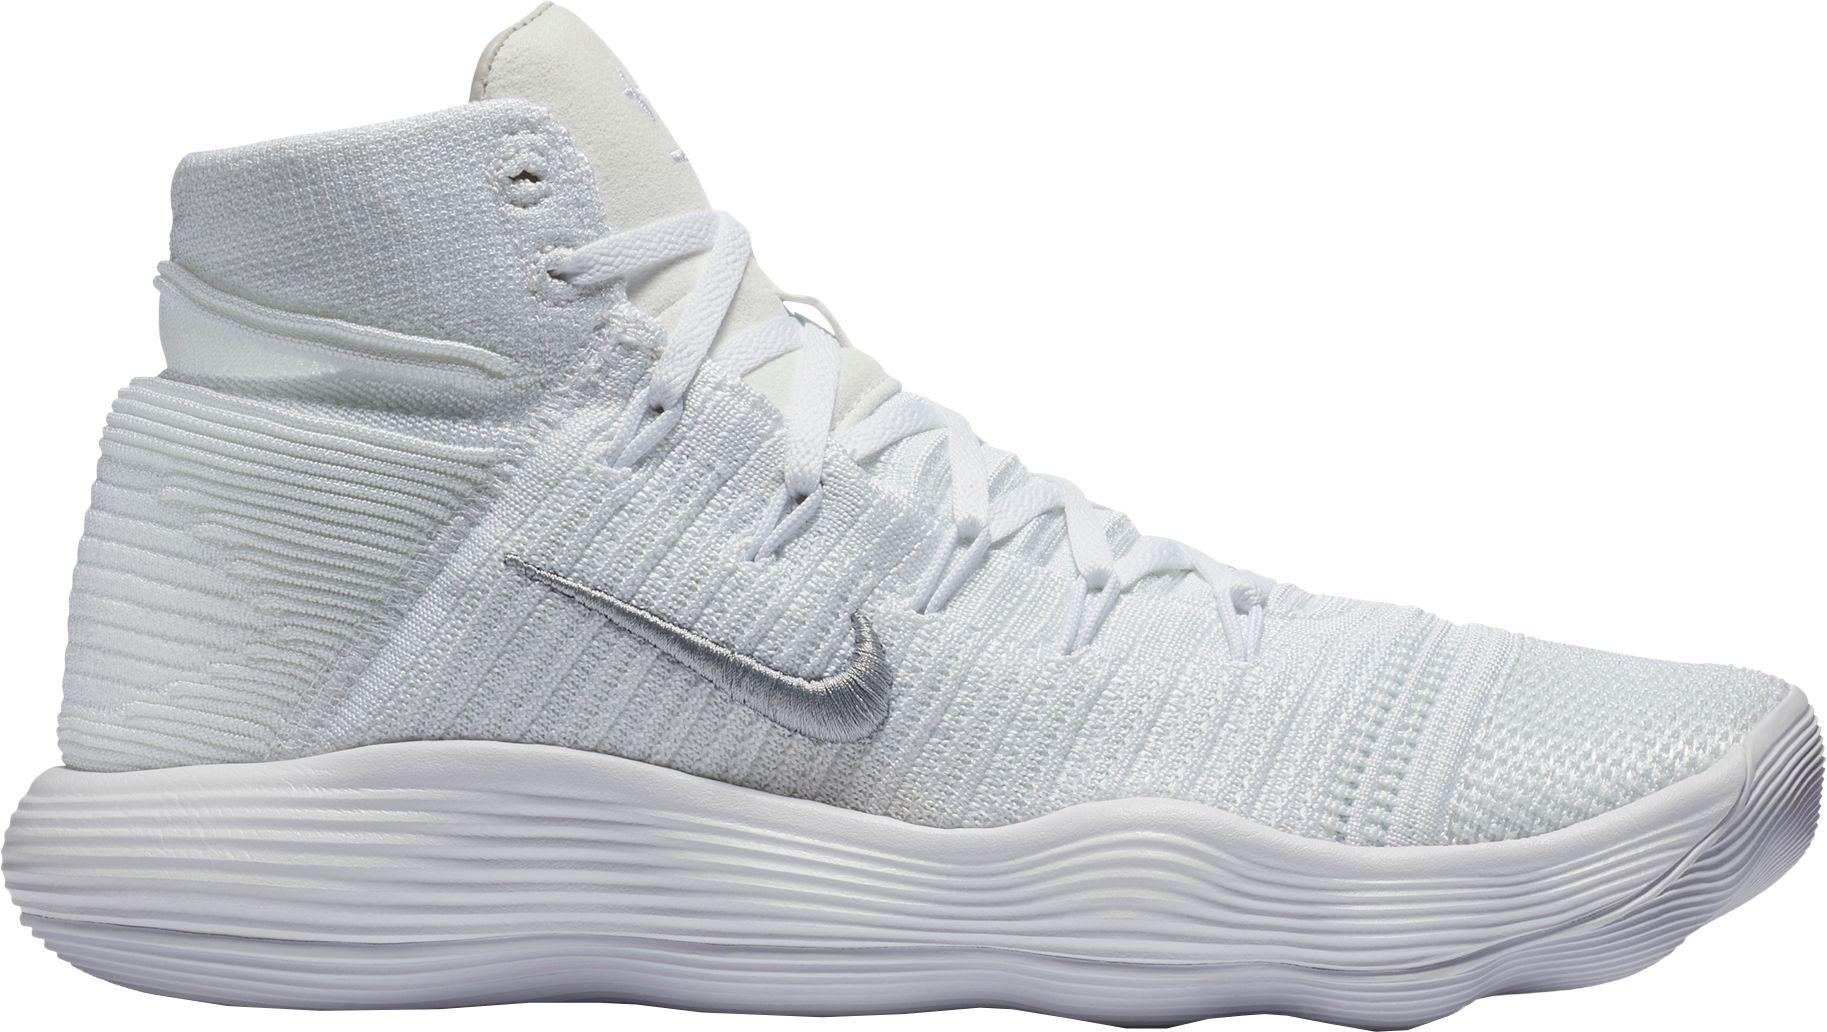 8a509a4f0fcc7 Nike - White React Hyperdunk 2017 Flyknit Basketball Shoes for Men - Lyst